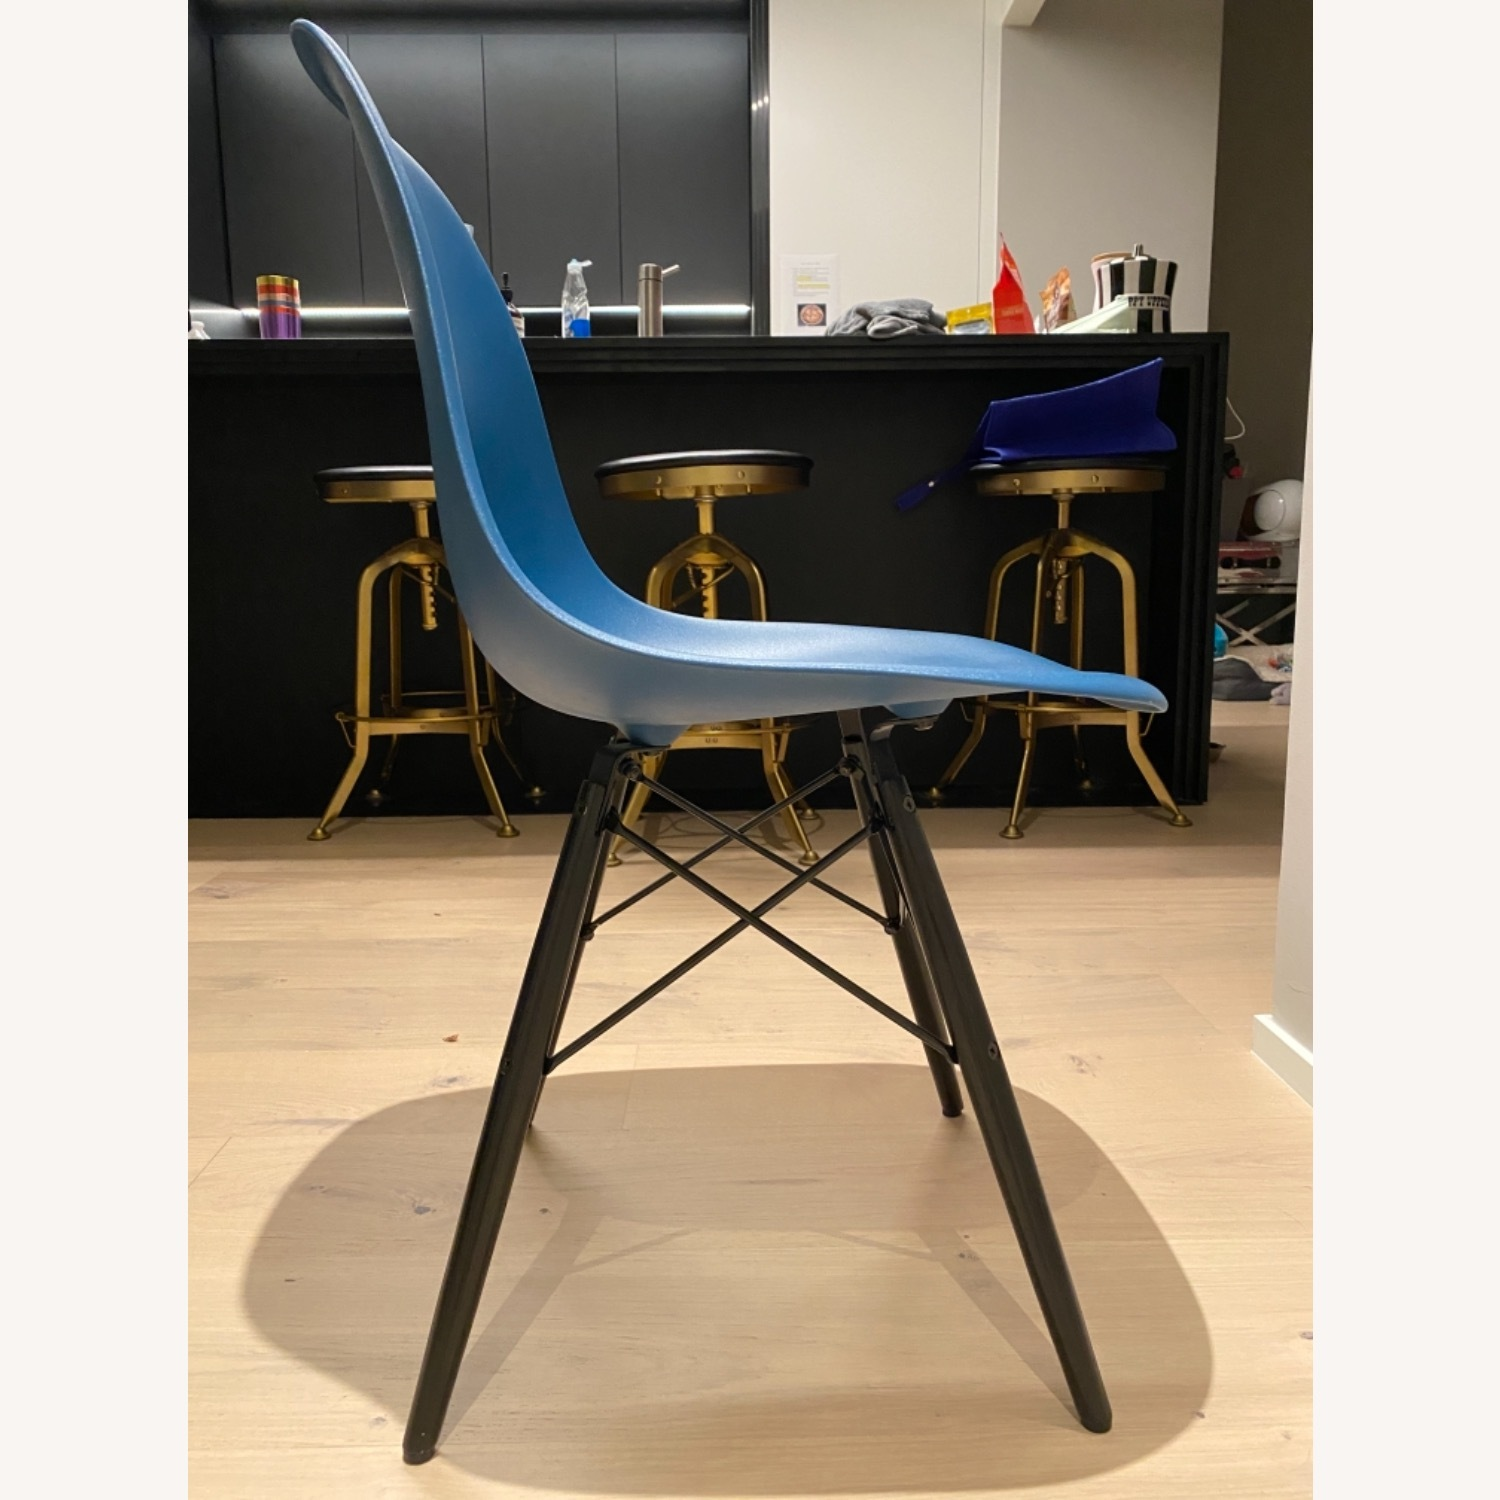 4 x Herman Miller Eames Molded Plastic Side Chair - image-9